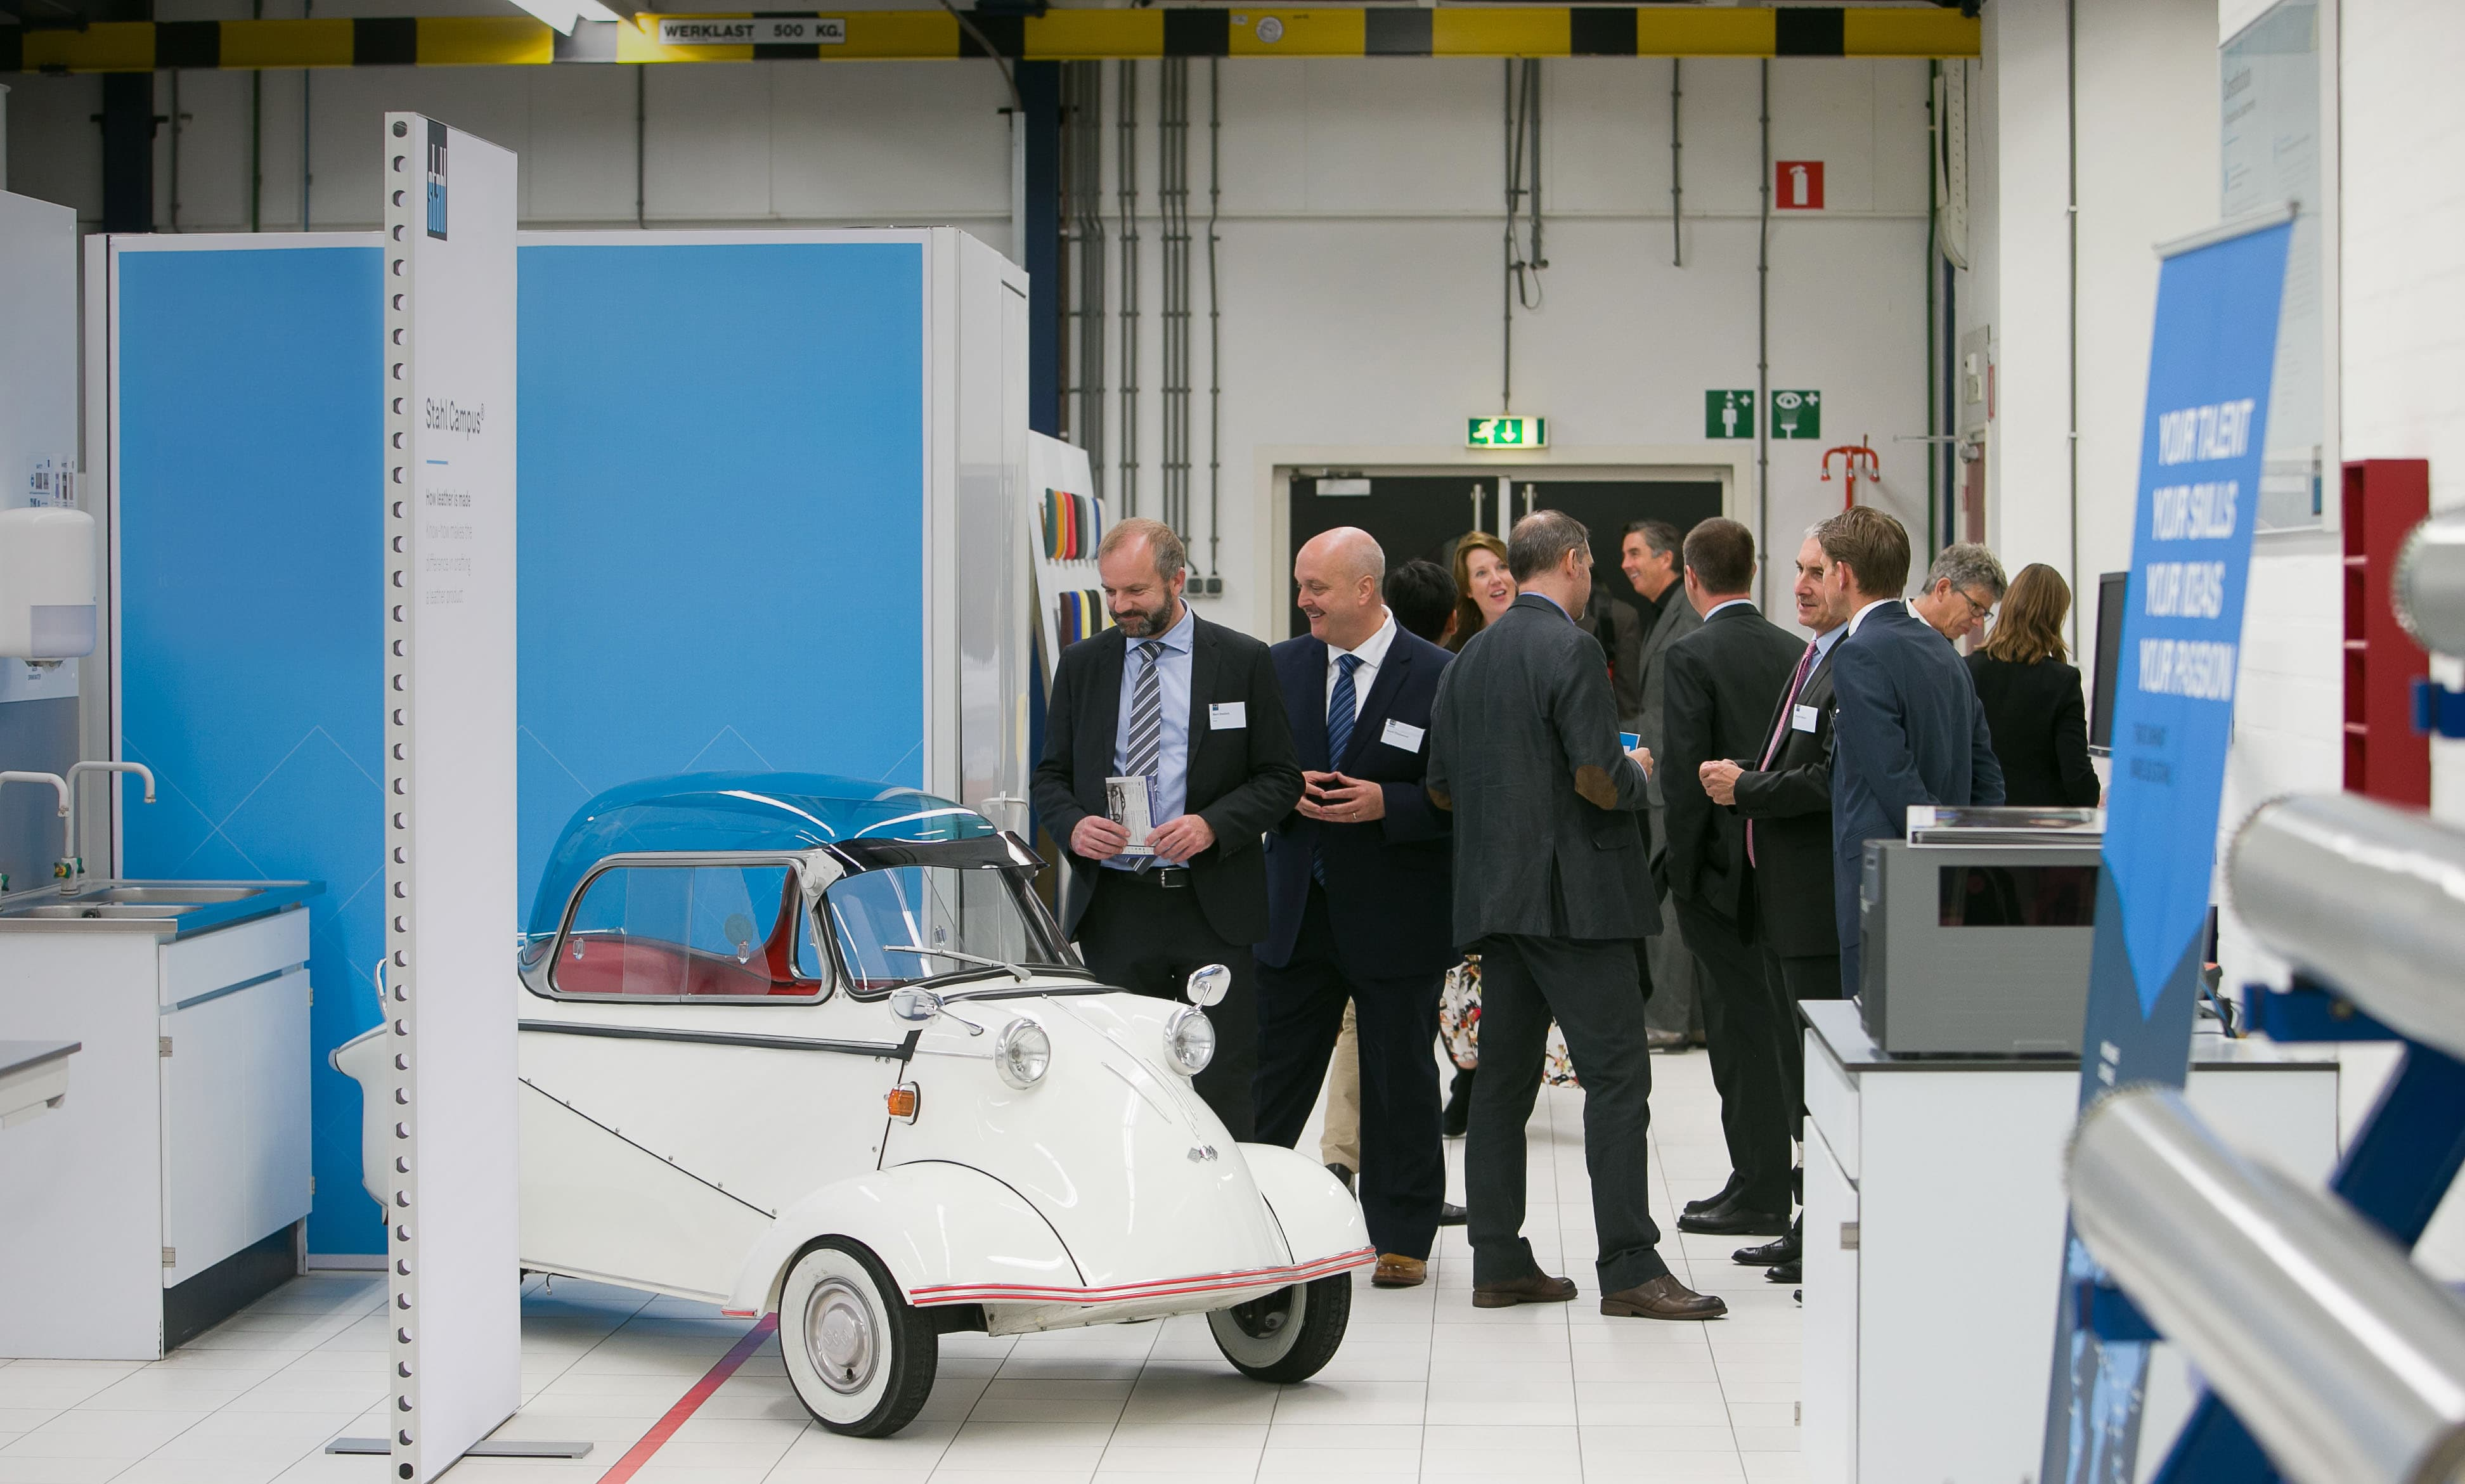 Stahl Center of Excellence for Automotive in the Netherlands